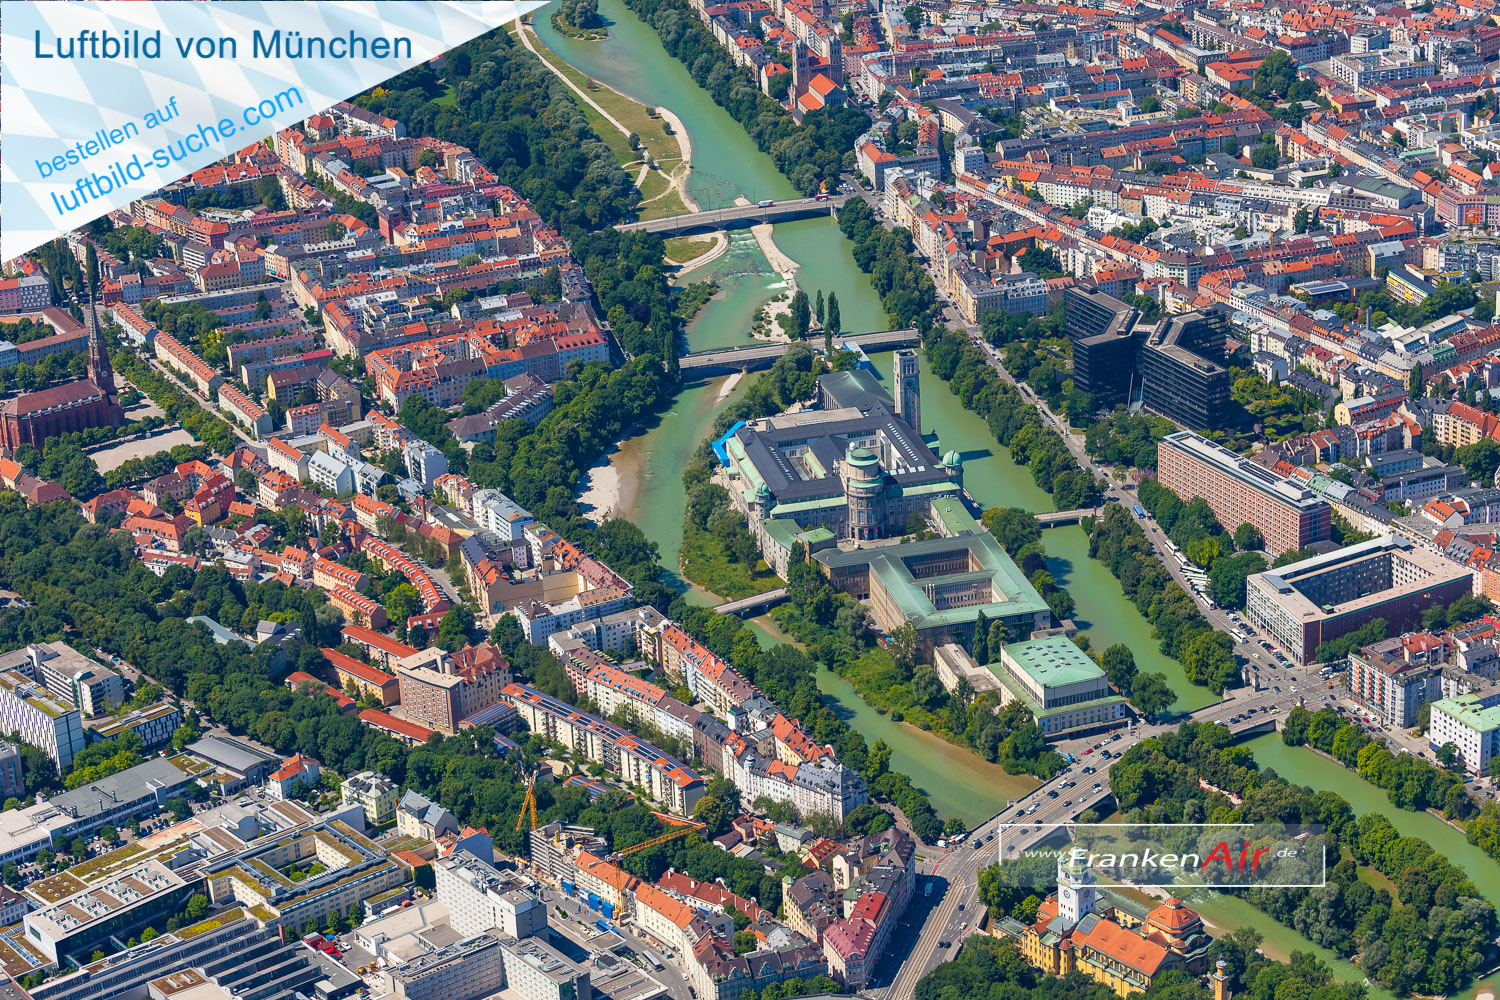 Museumsinsel-muenchen-17-2382